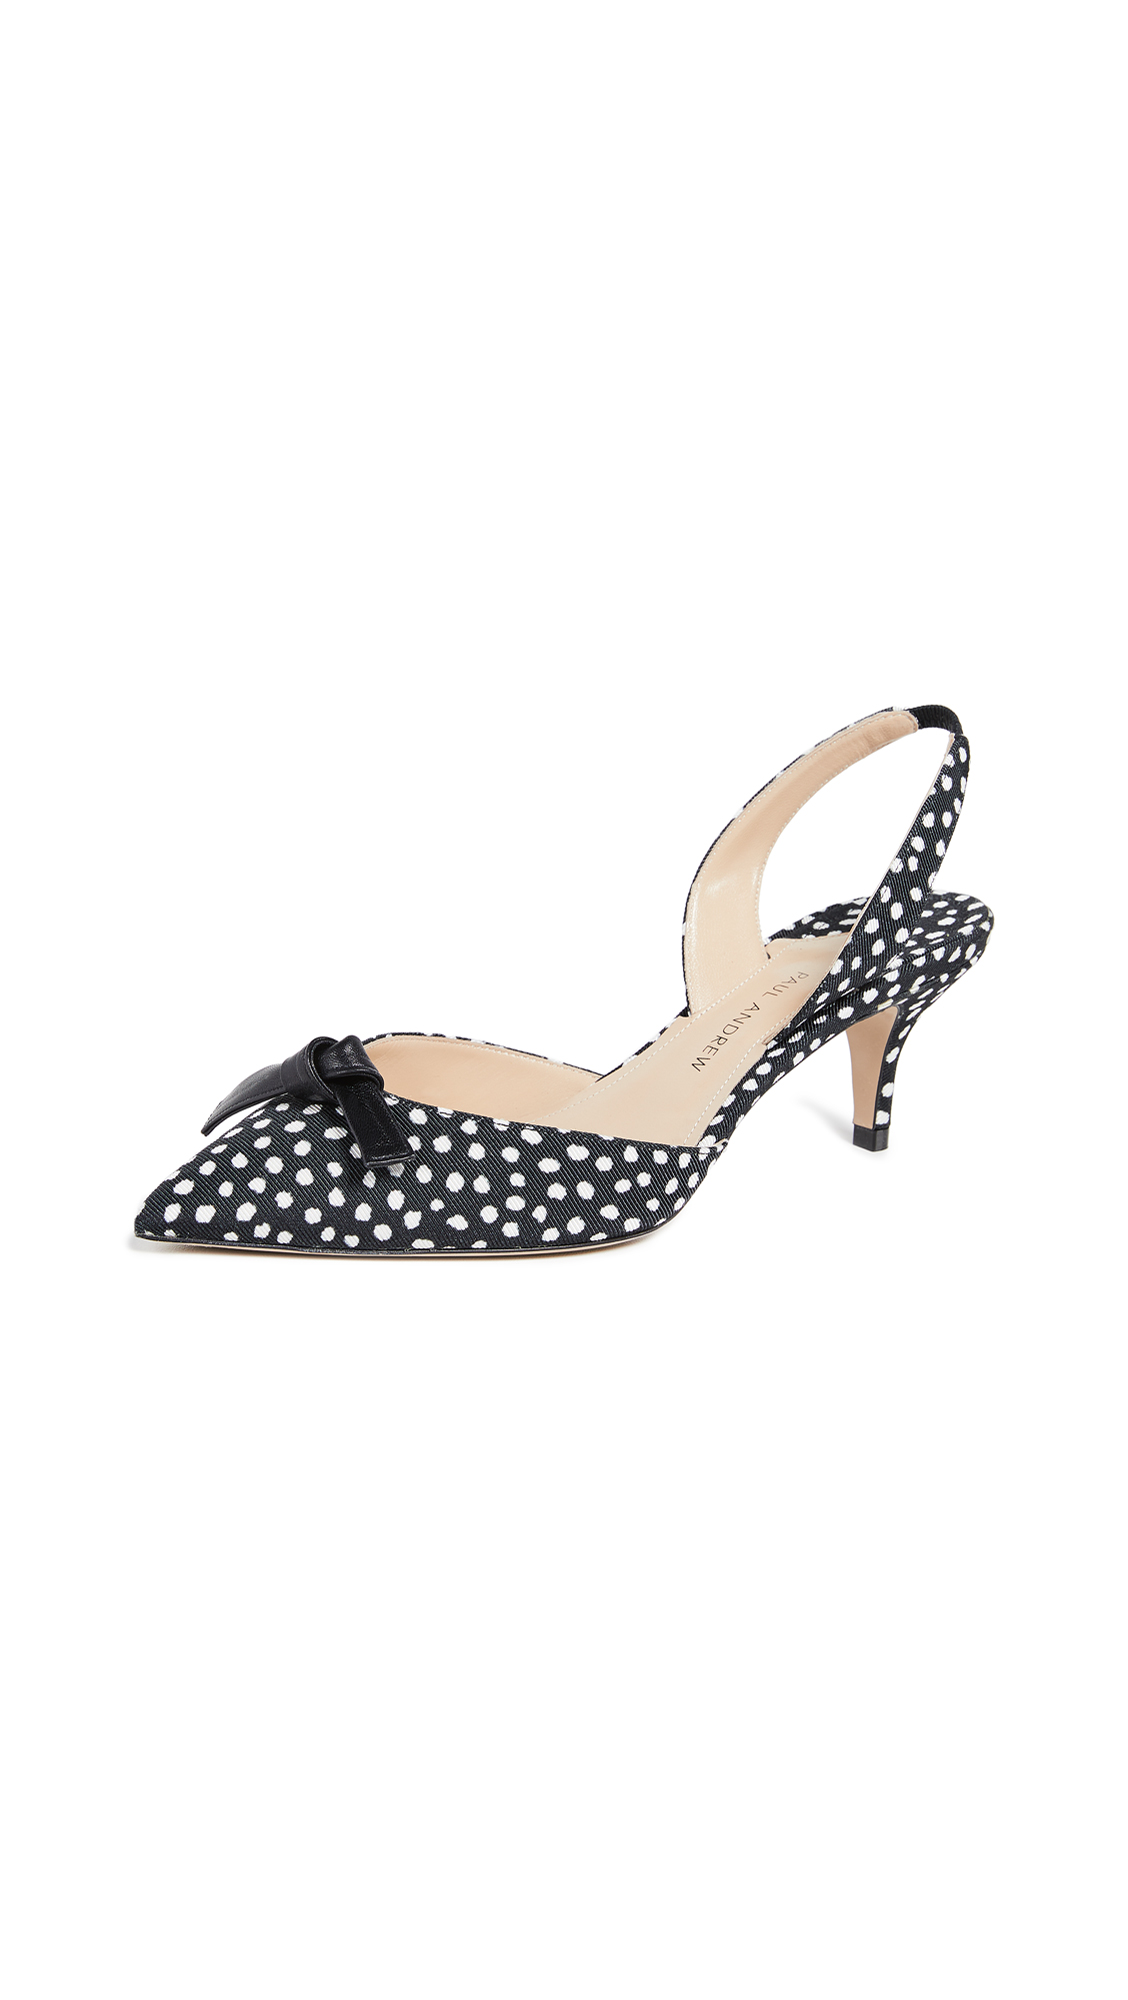 Paul Andrew Rhea Knot 55 Slingback Pumps - Black/White